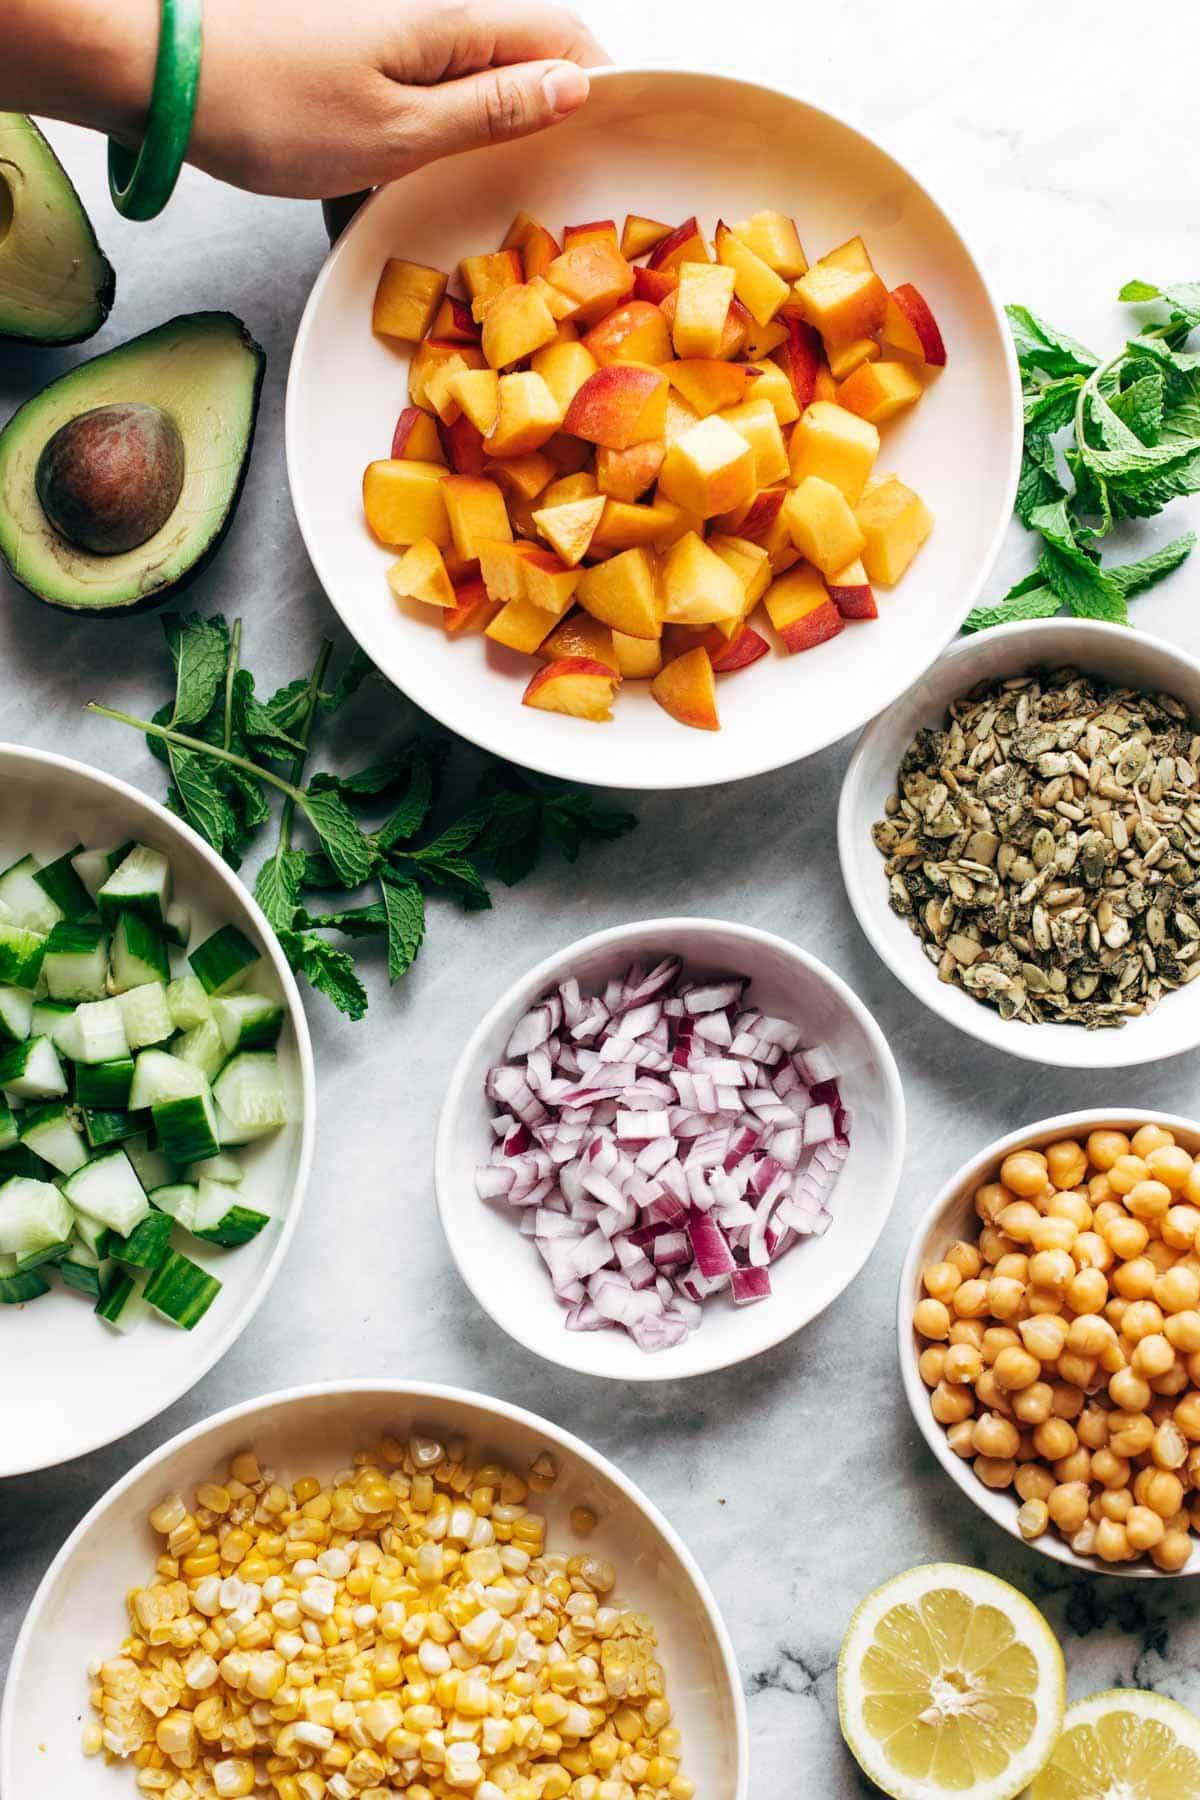 Ingredients for couscous summer salad in bowls.